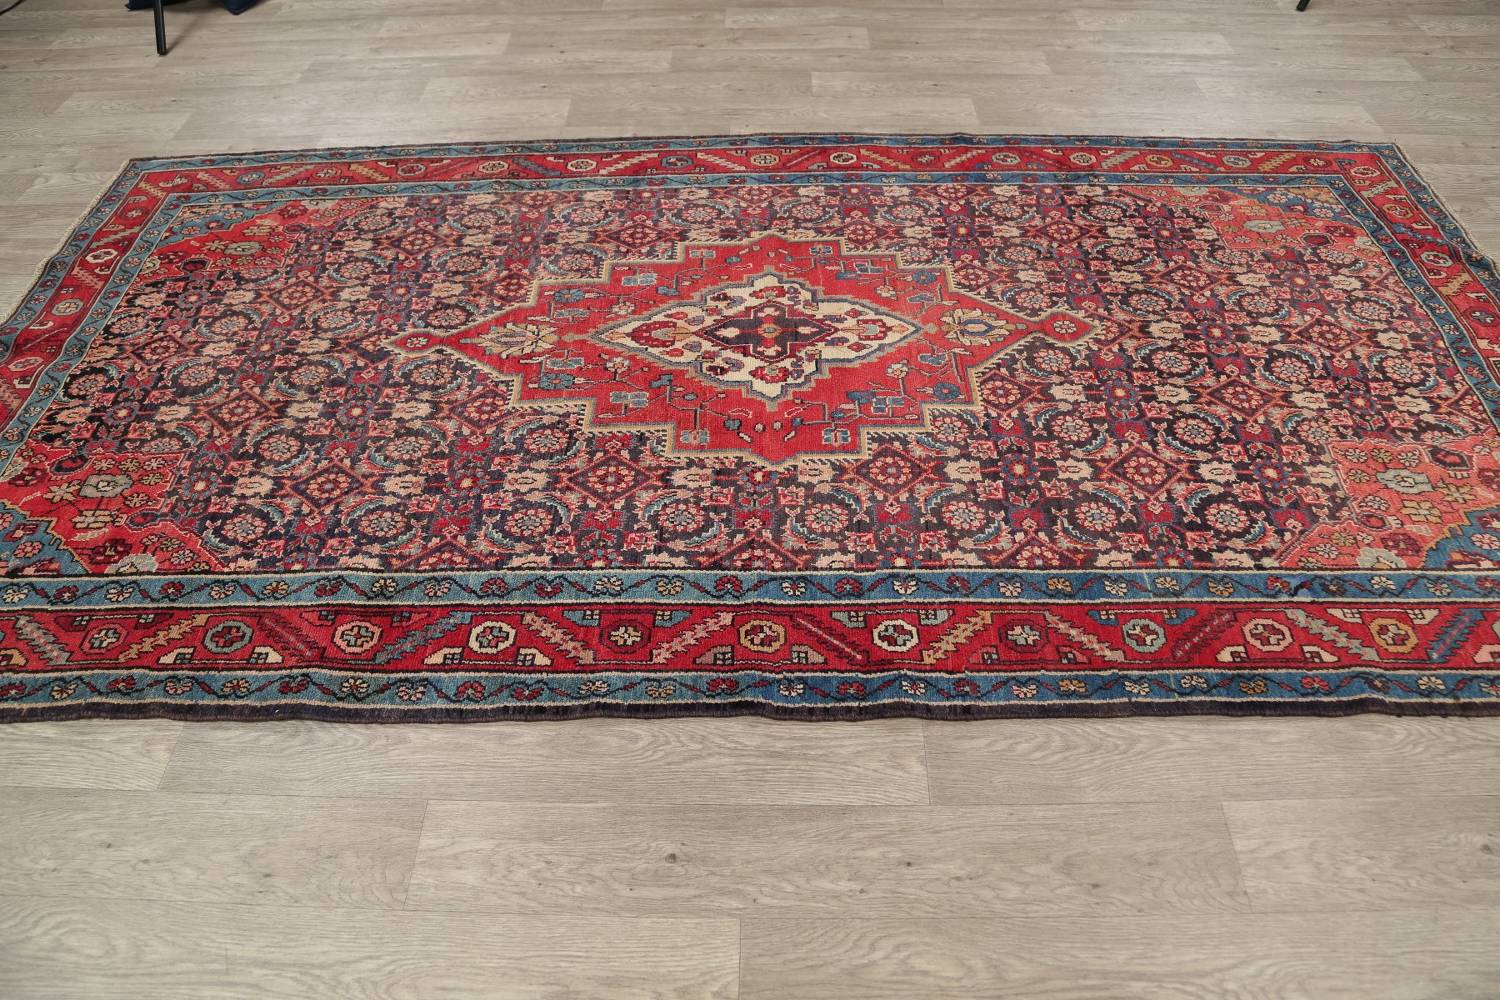 Antique Bakhtiari Persian Hand-Knotted 5x10 Wool Runner Rug image 13